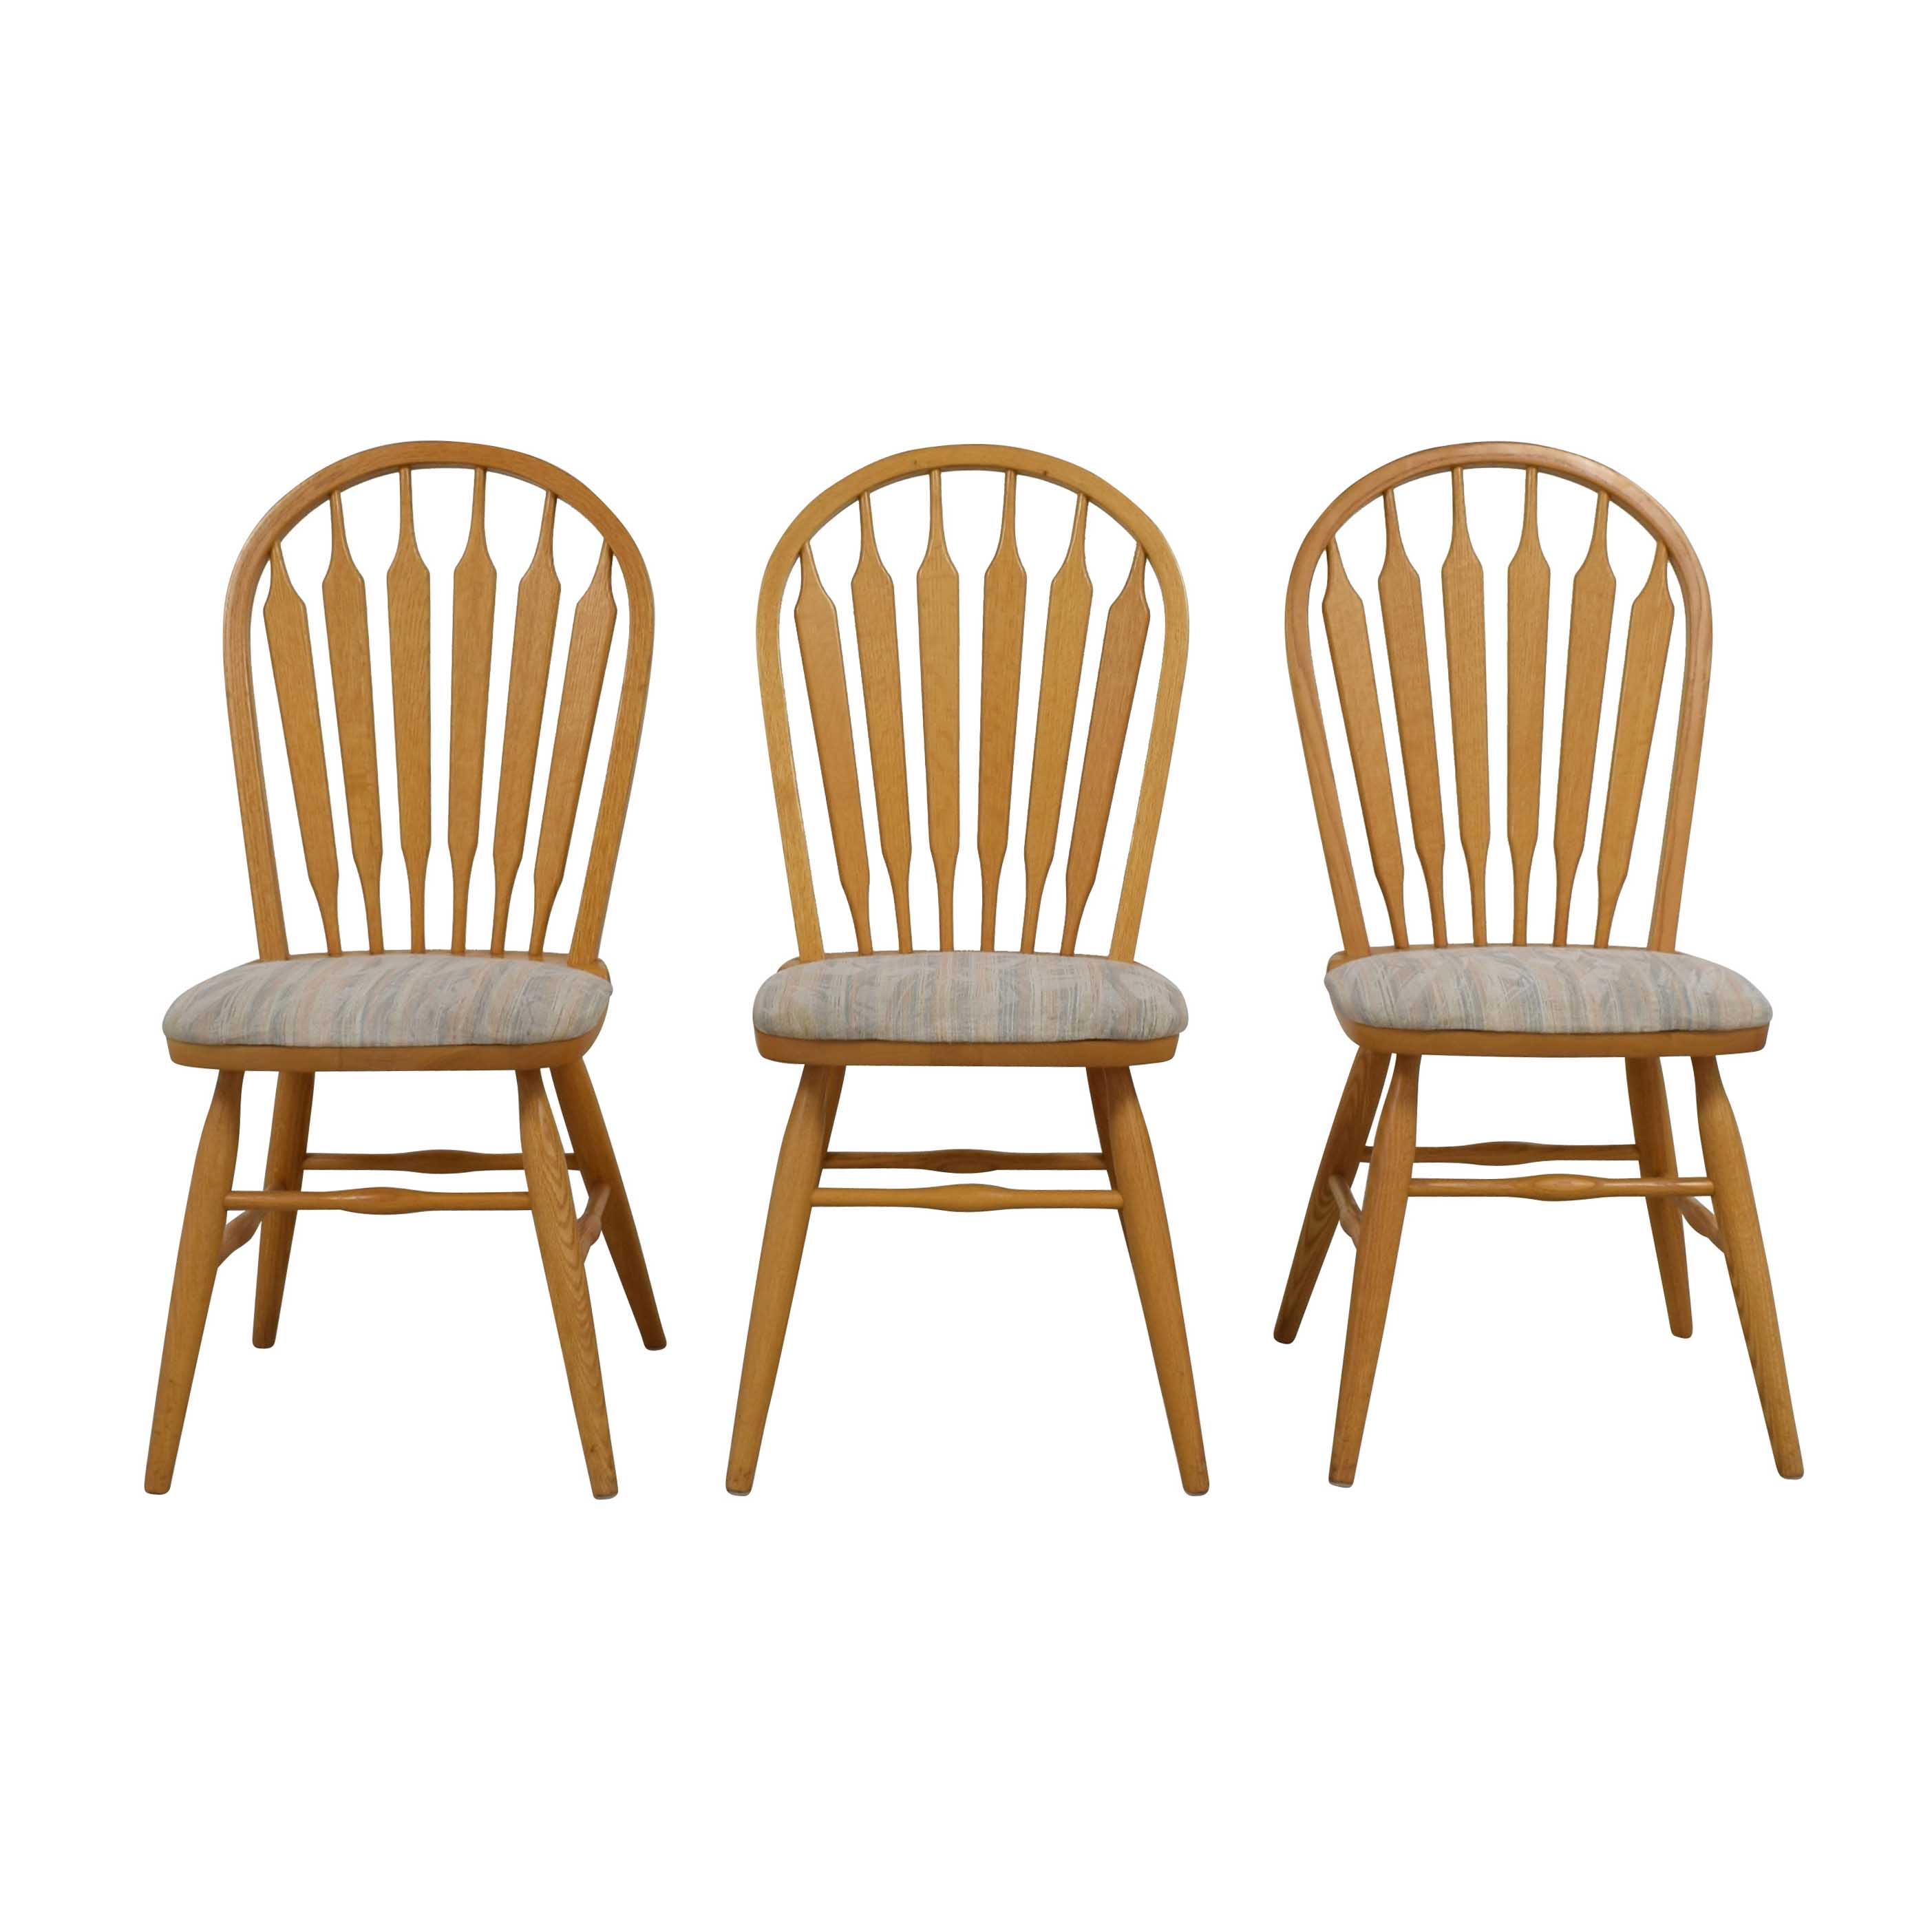 dinaire dinaire kitchen chairs with cushions for sale